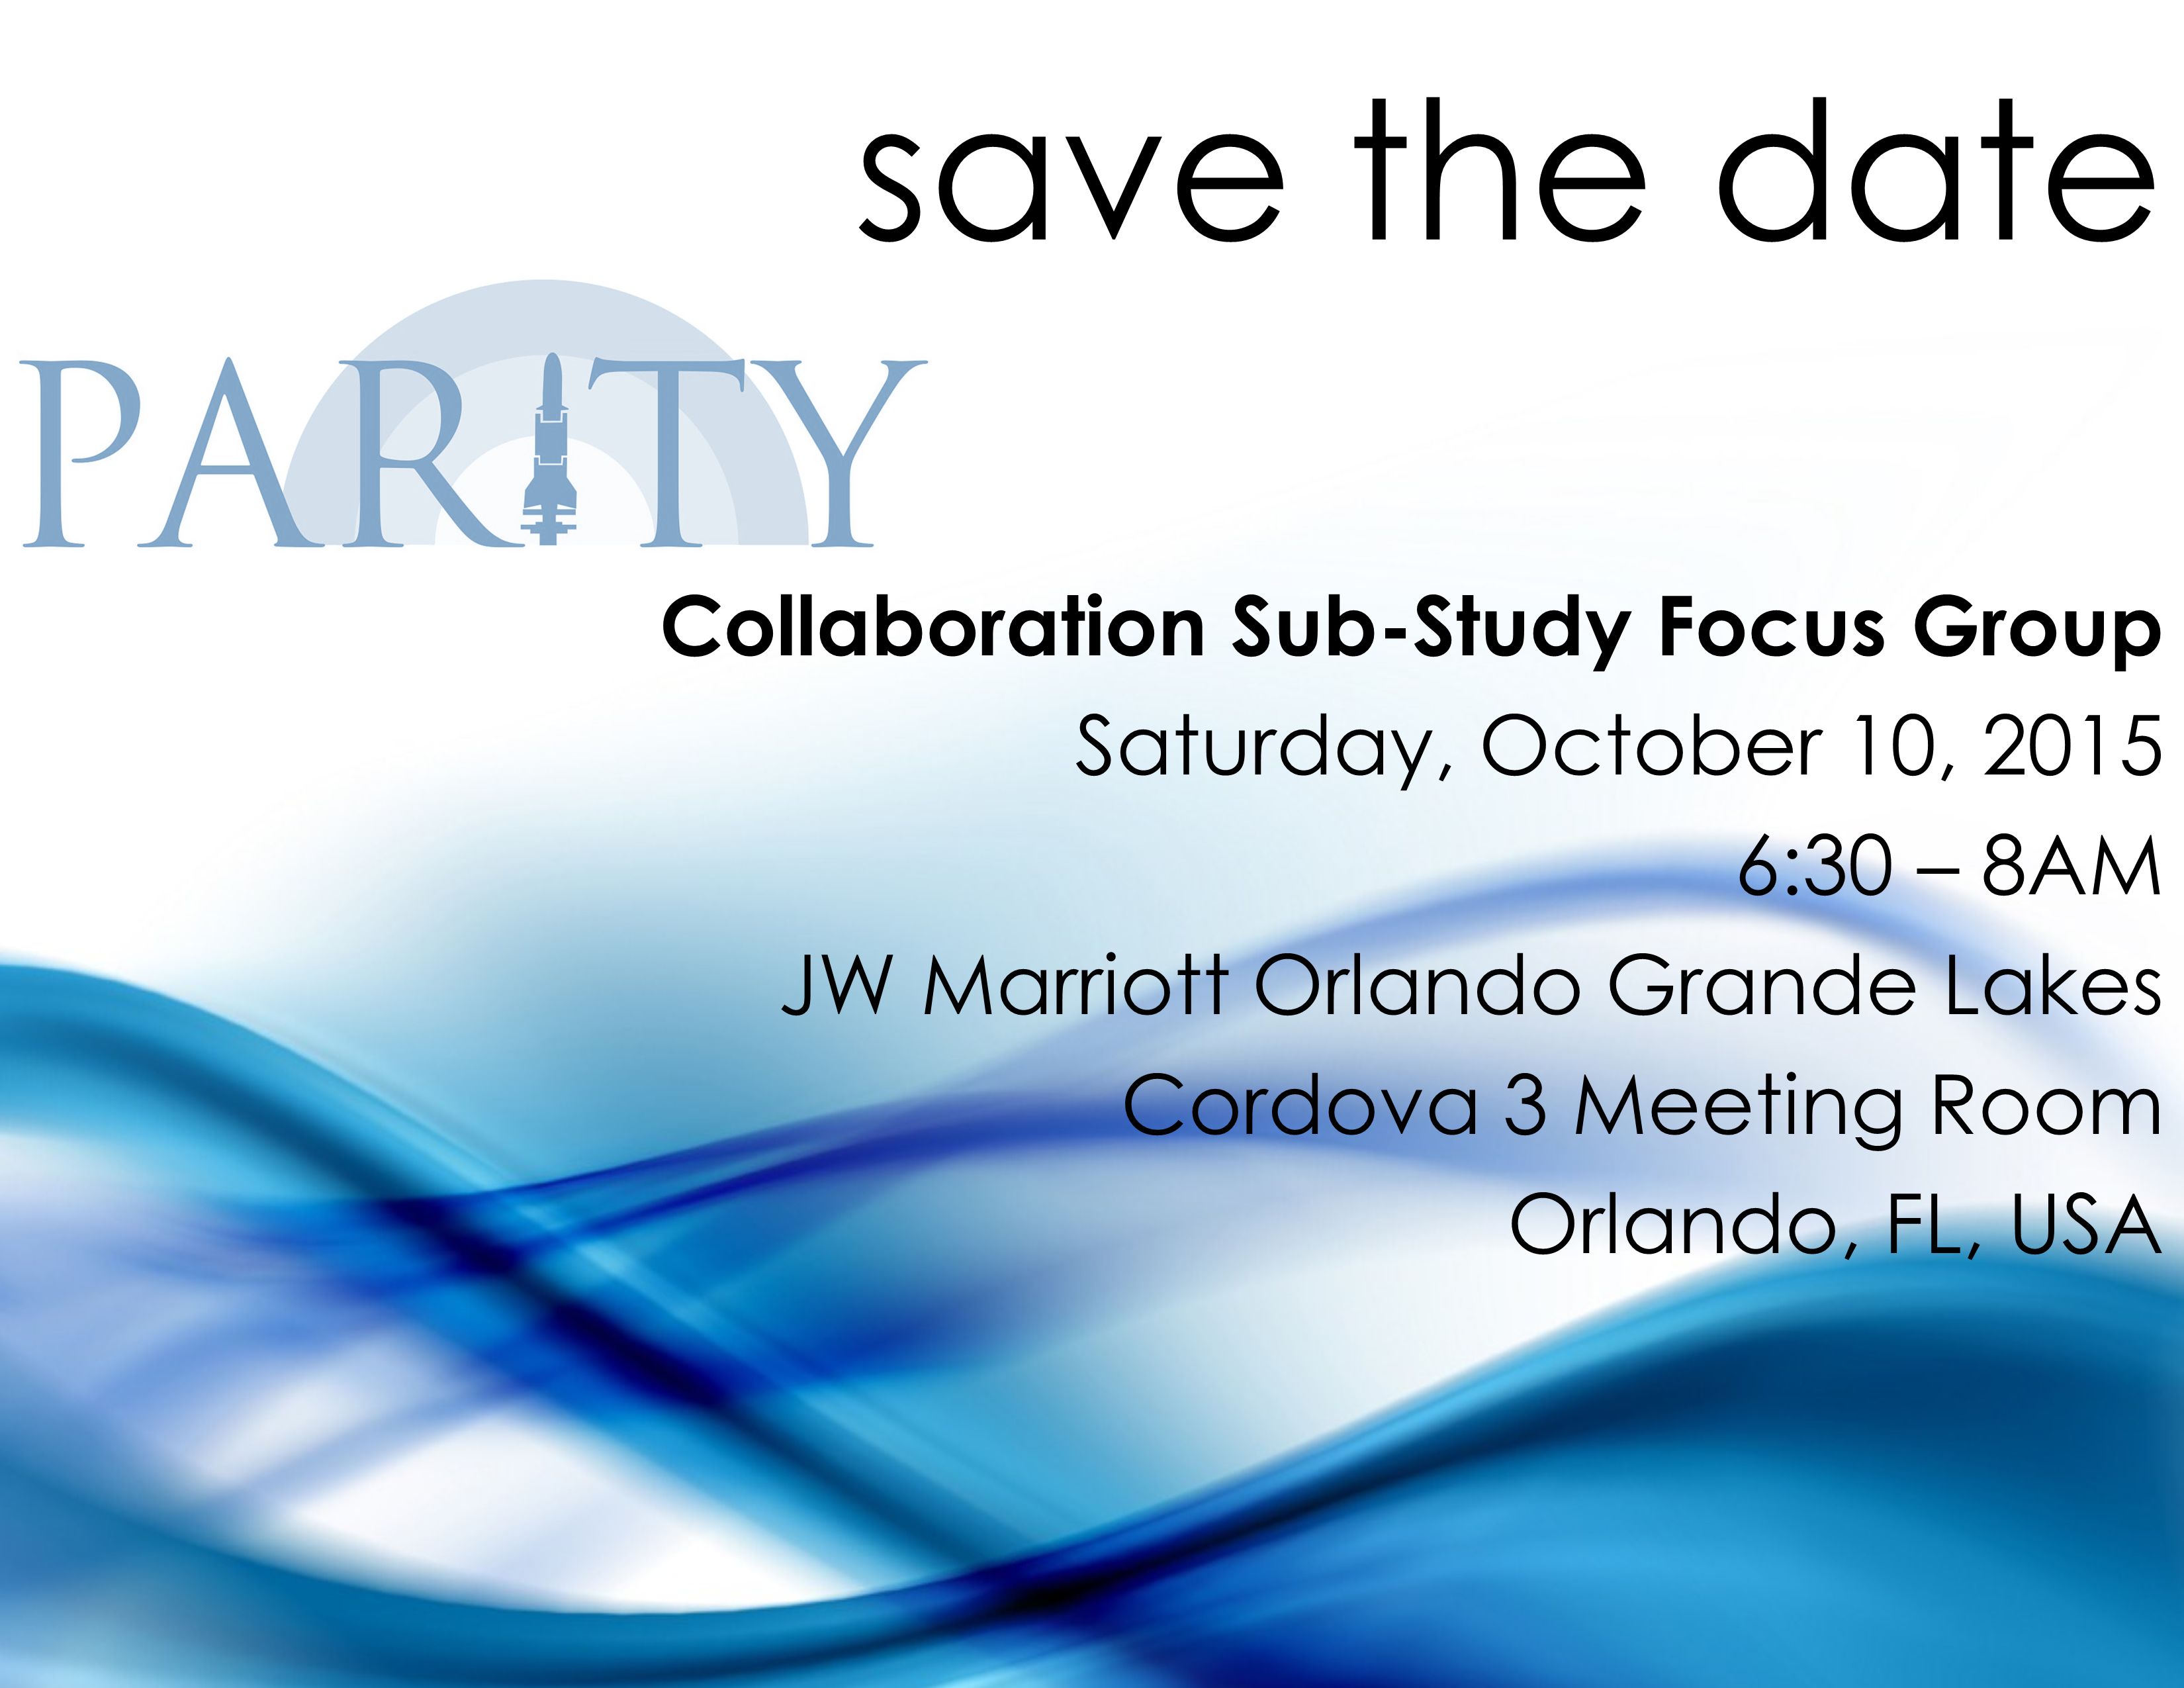 PARITY Trial - Save the Date Collaboration Sub-Study October 2015 - Letter Size UPDATED